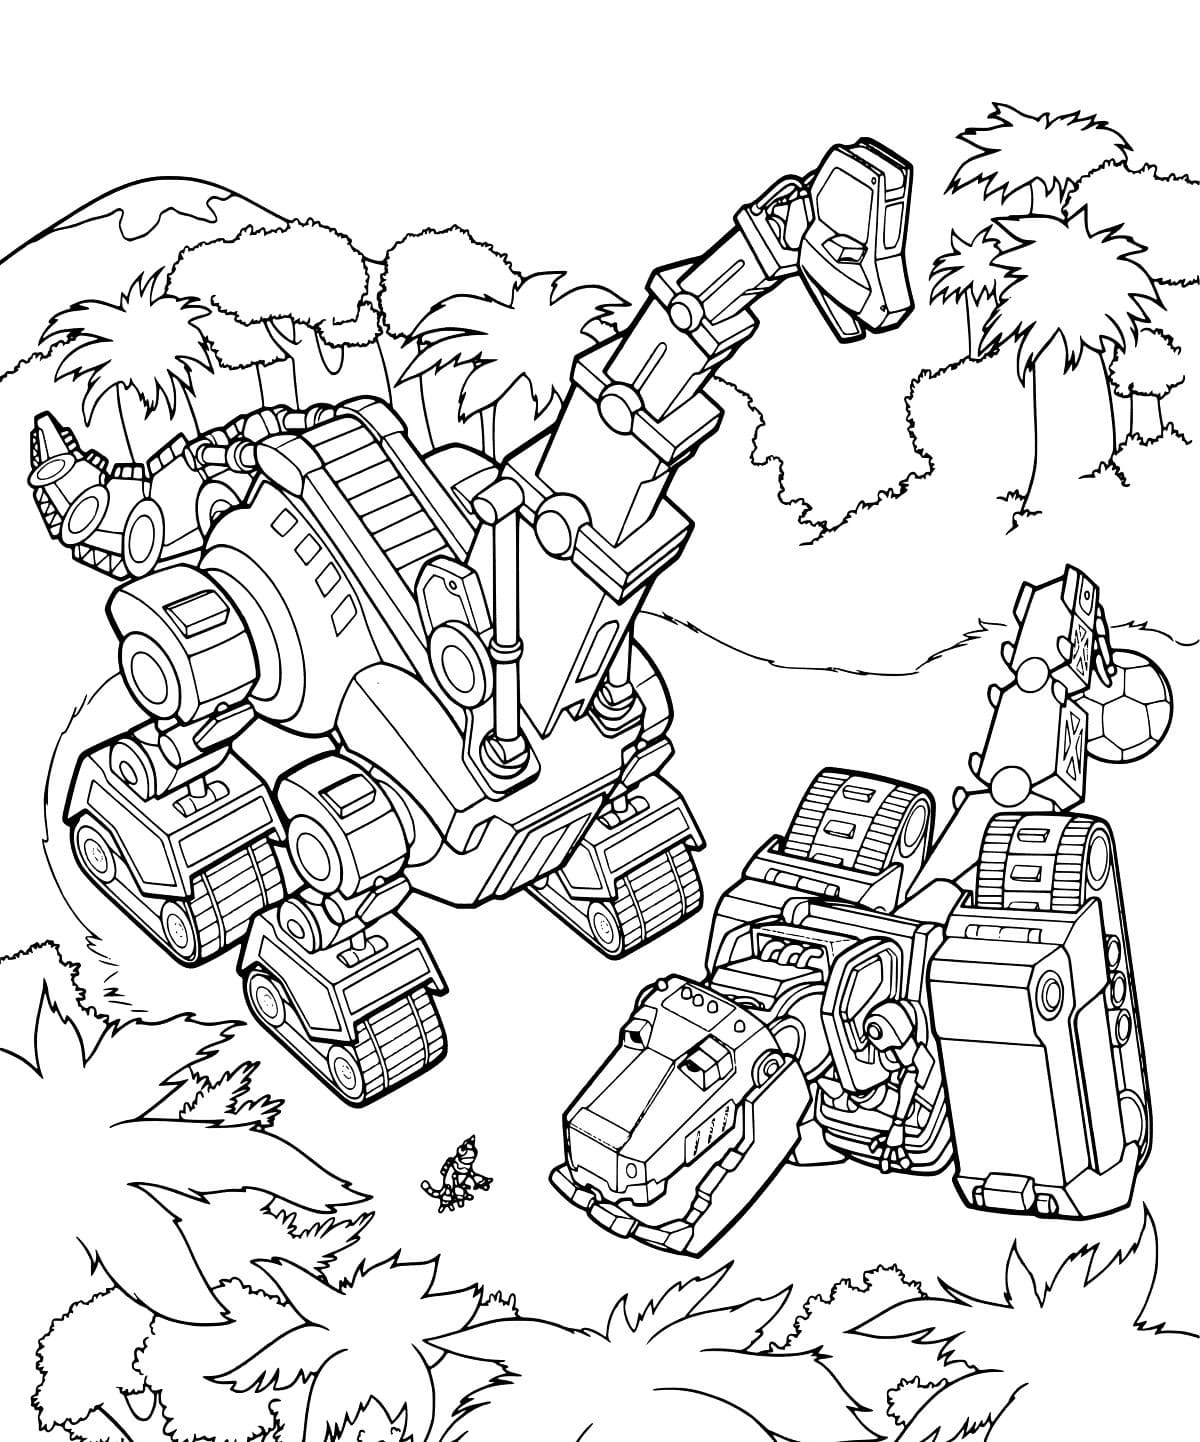 Dinotrux Coloring Pages Print For Kids Wonder Day Coloring Pages For Children And Adults